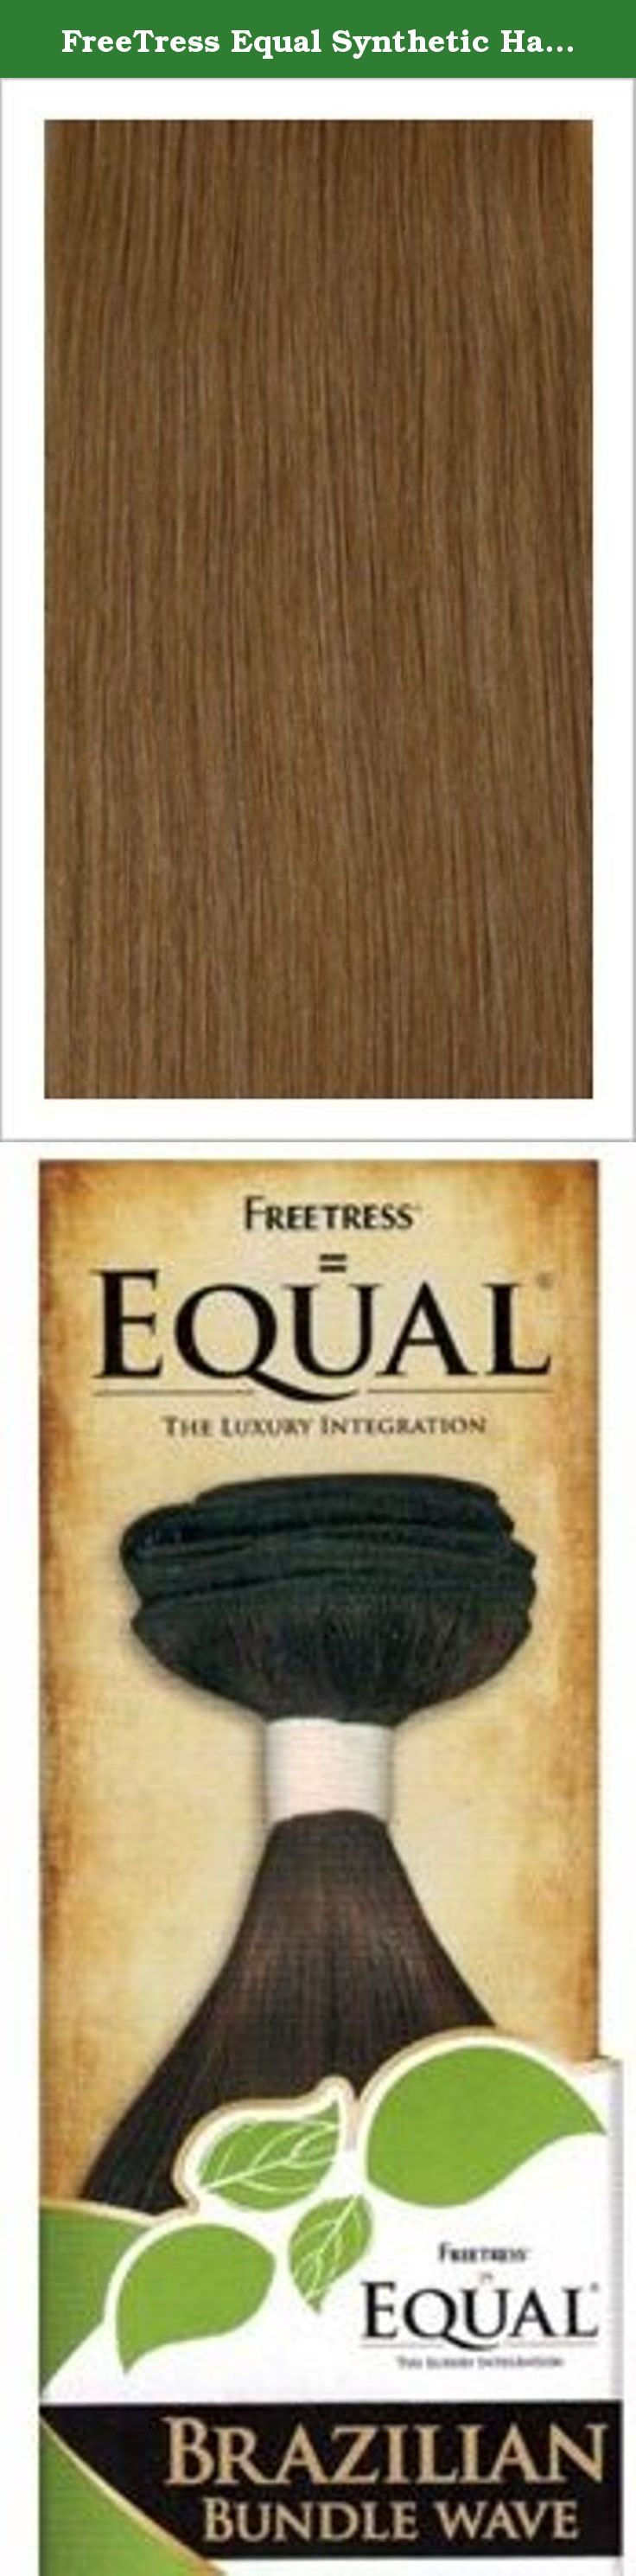 """FreeTress Equal Synthetic Hair Weave Brazilian Bundle Wave [16""""] (27). Already Professionally Colored! Choose The Color You Love! Curling Iron Safe up to 400."""